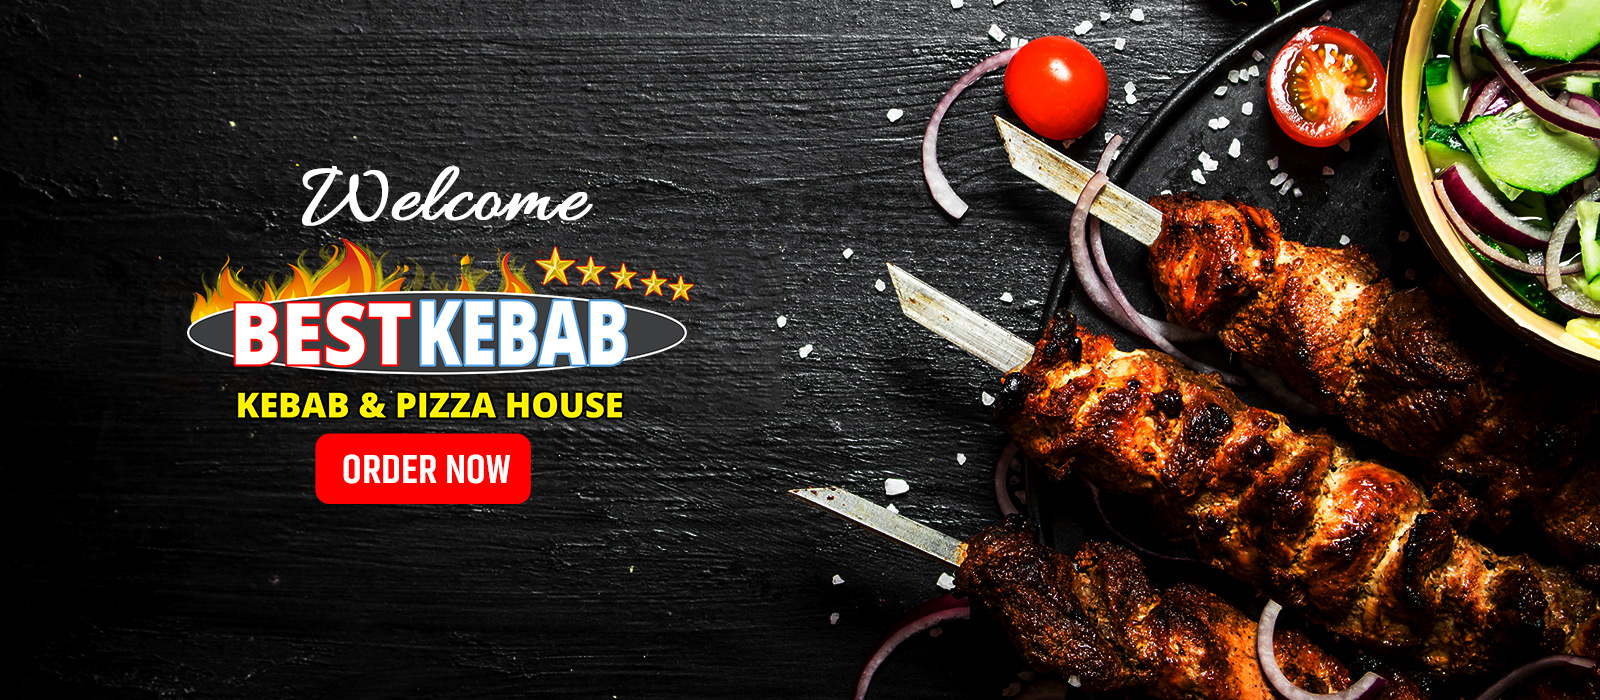 Best Kebab Takeaway Newcastle Best Kebab Takeaway